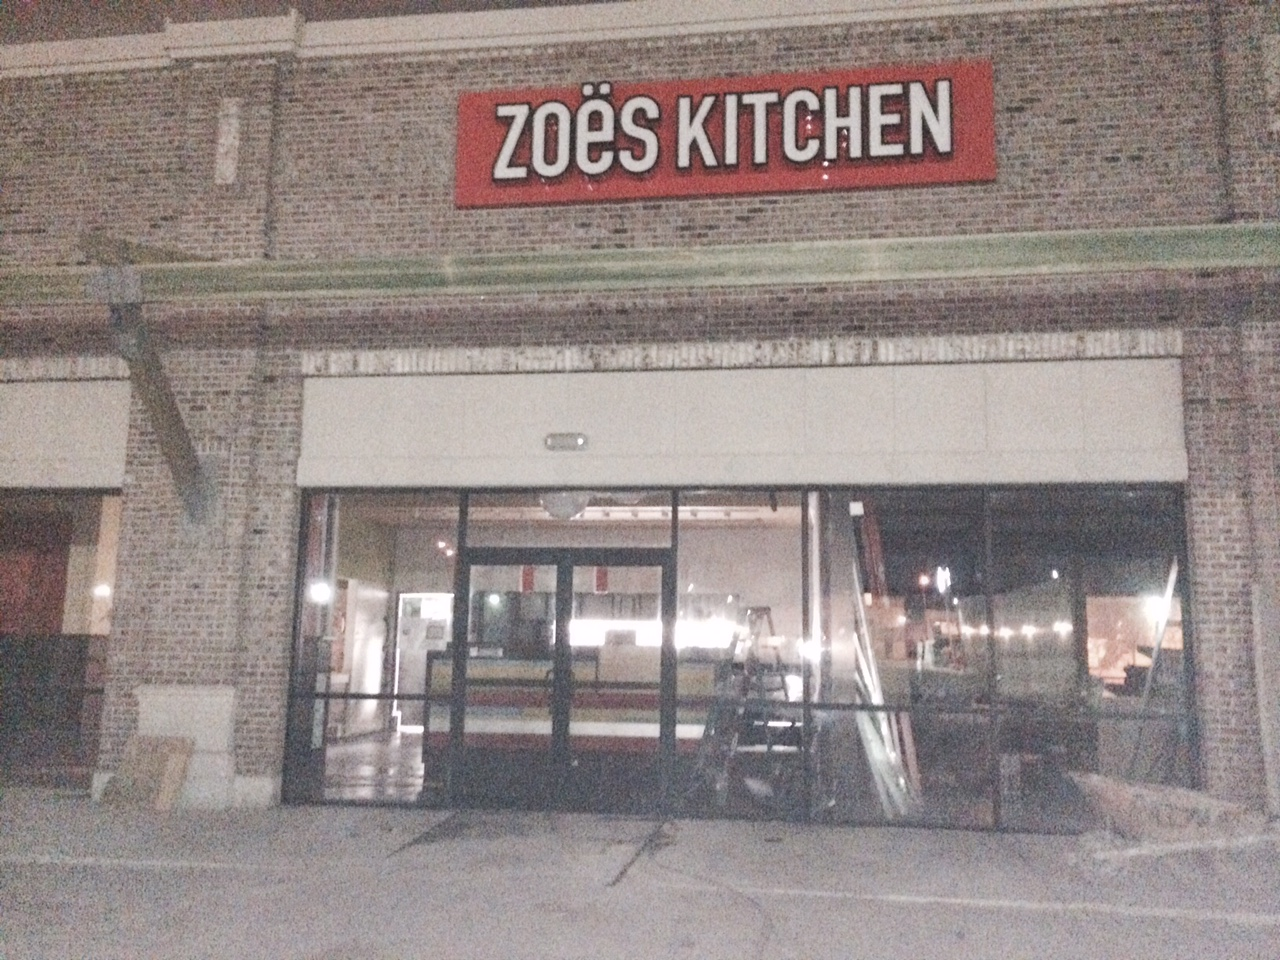 Zoes Kitchen Houston TX Final Post Construction Clean Up